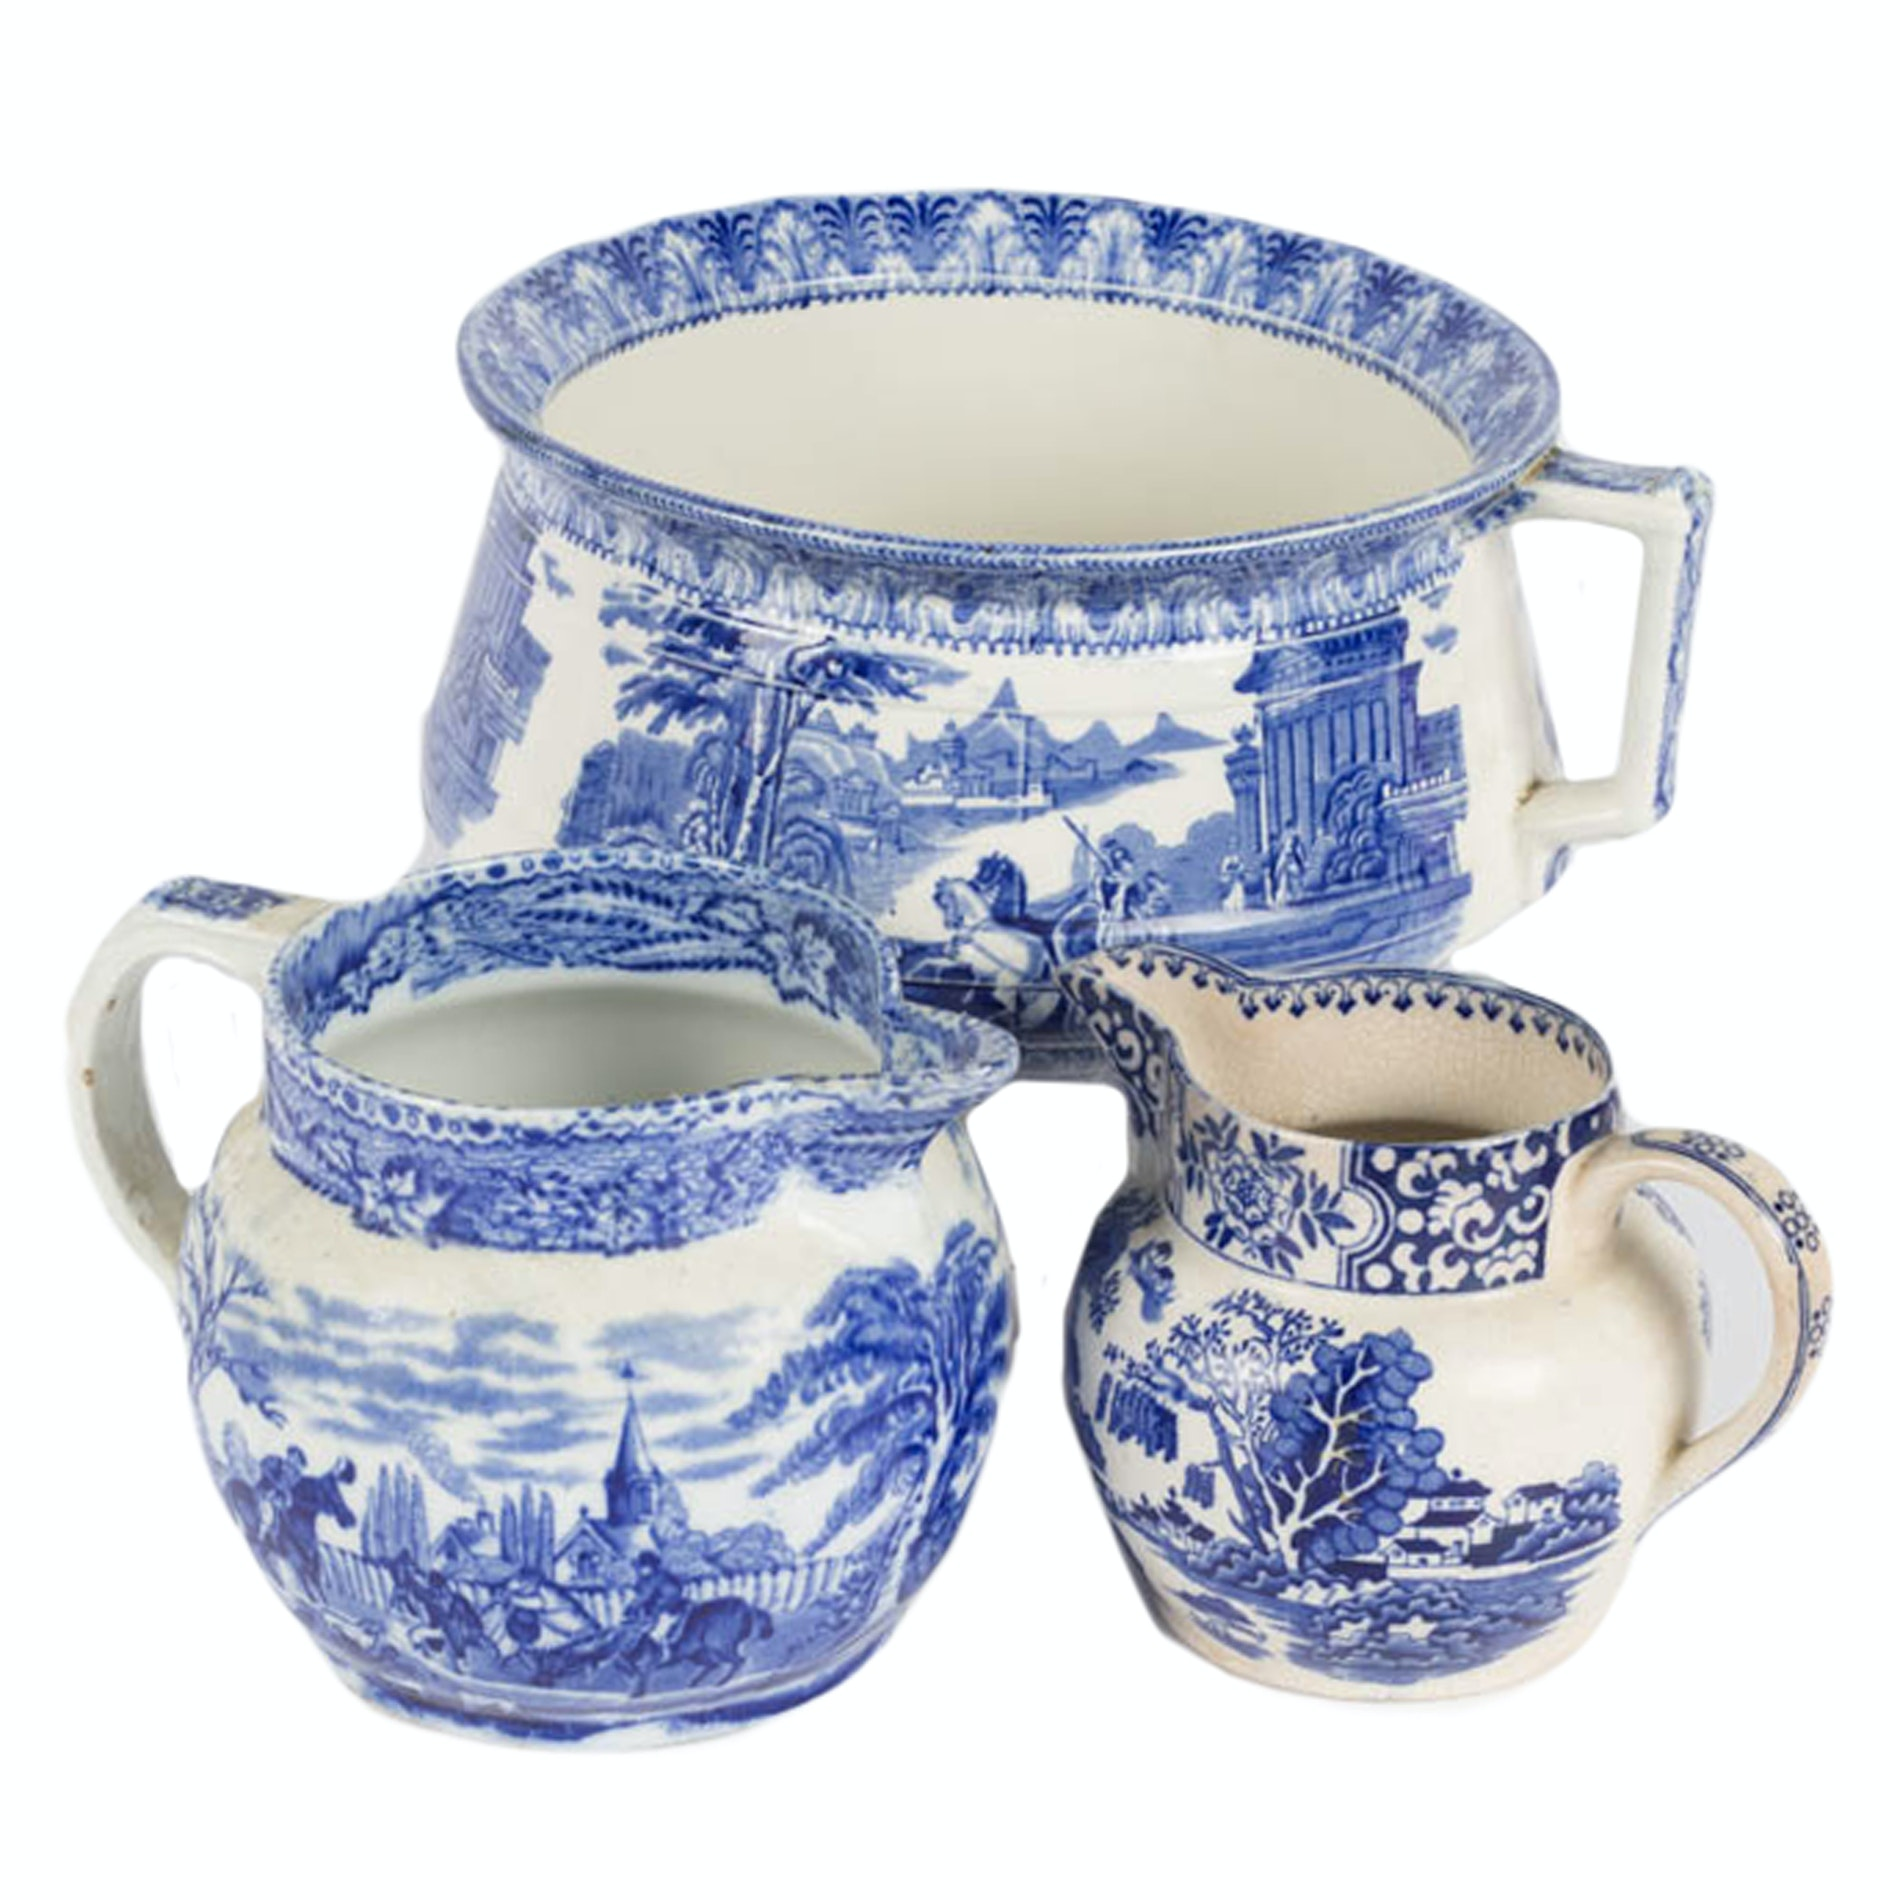 Vintage Chamber Pot and Pitchers